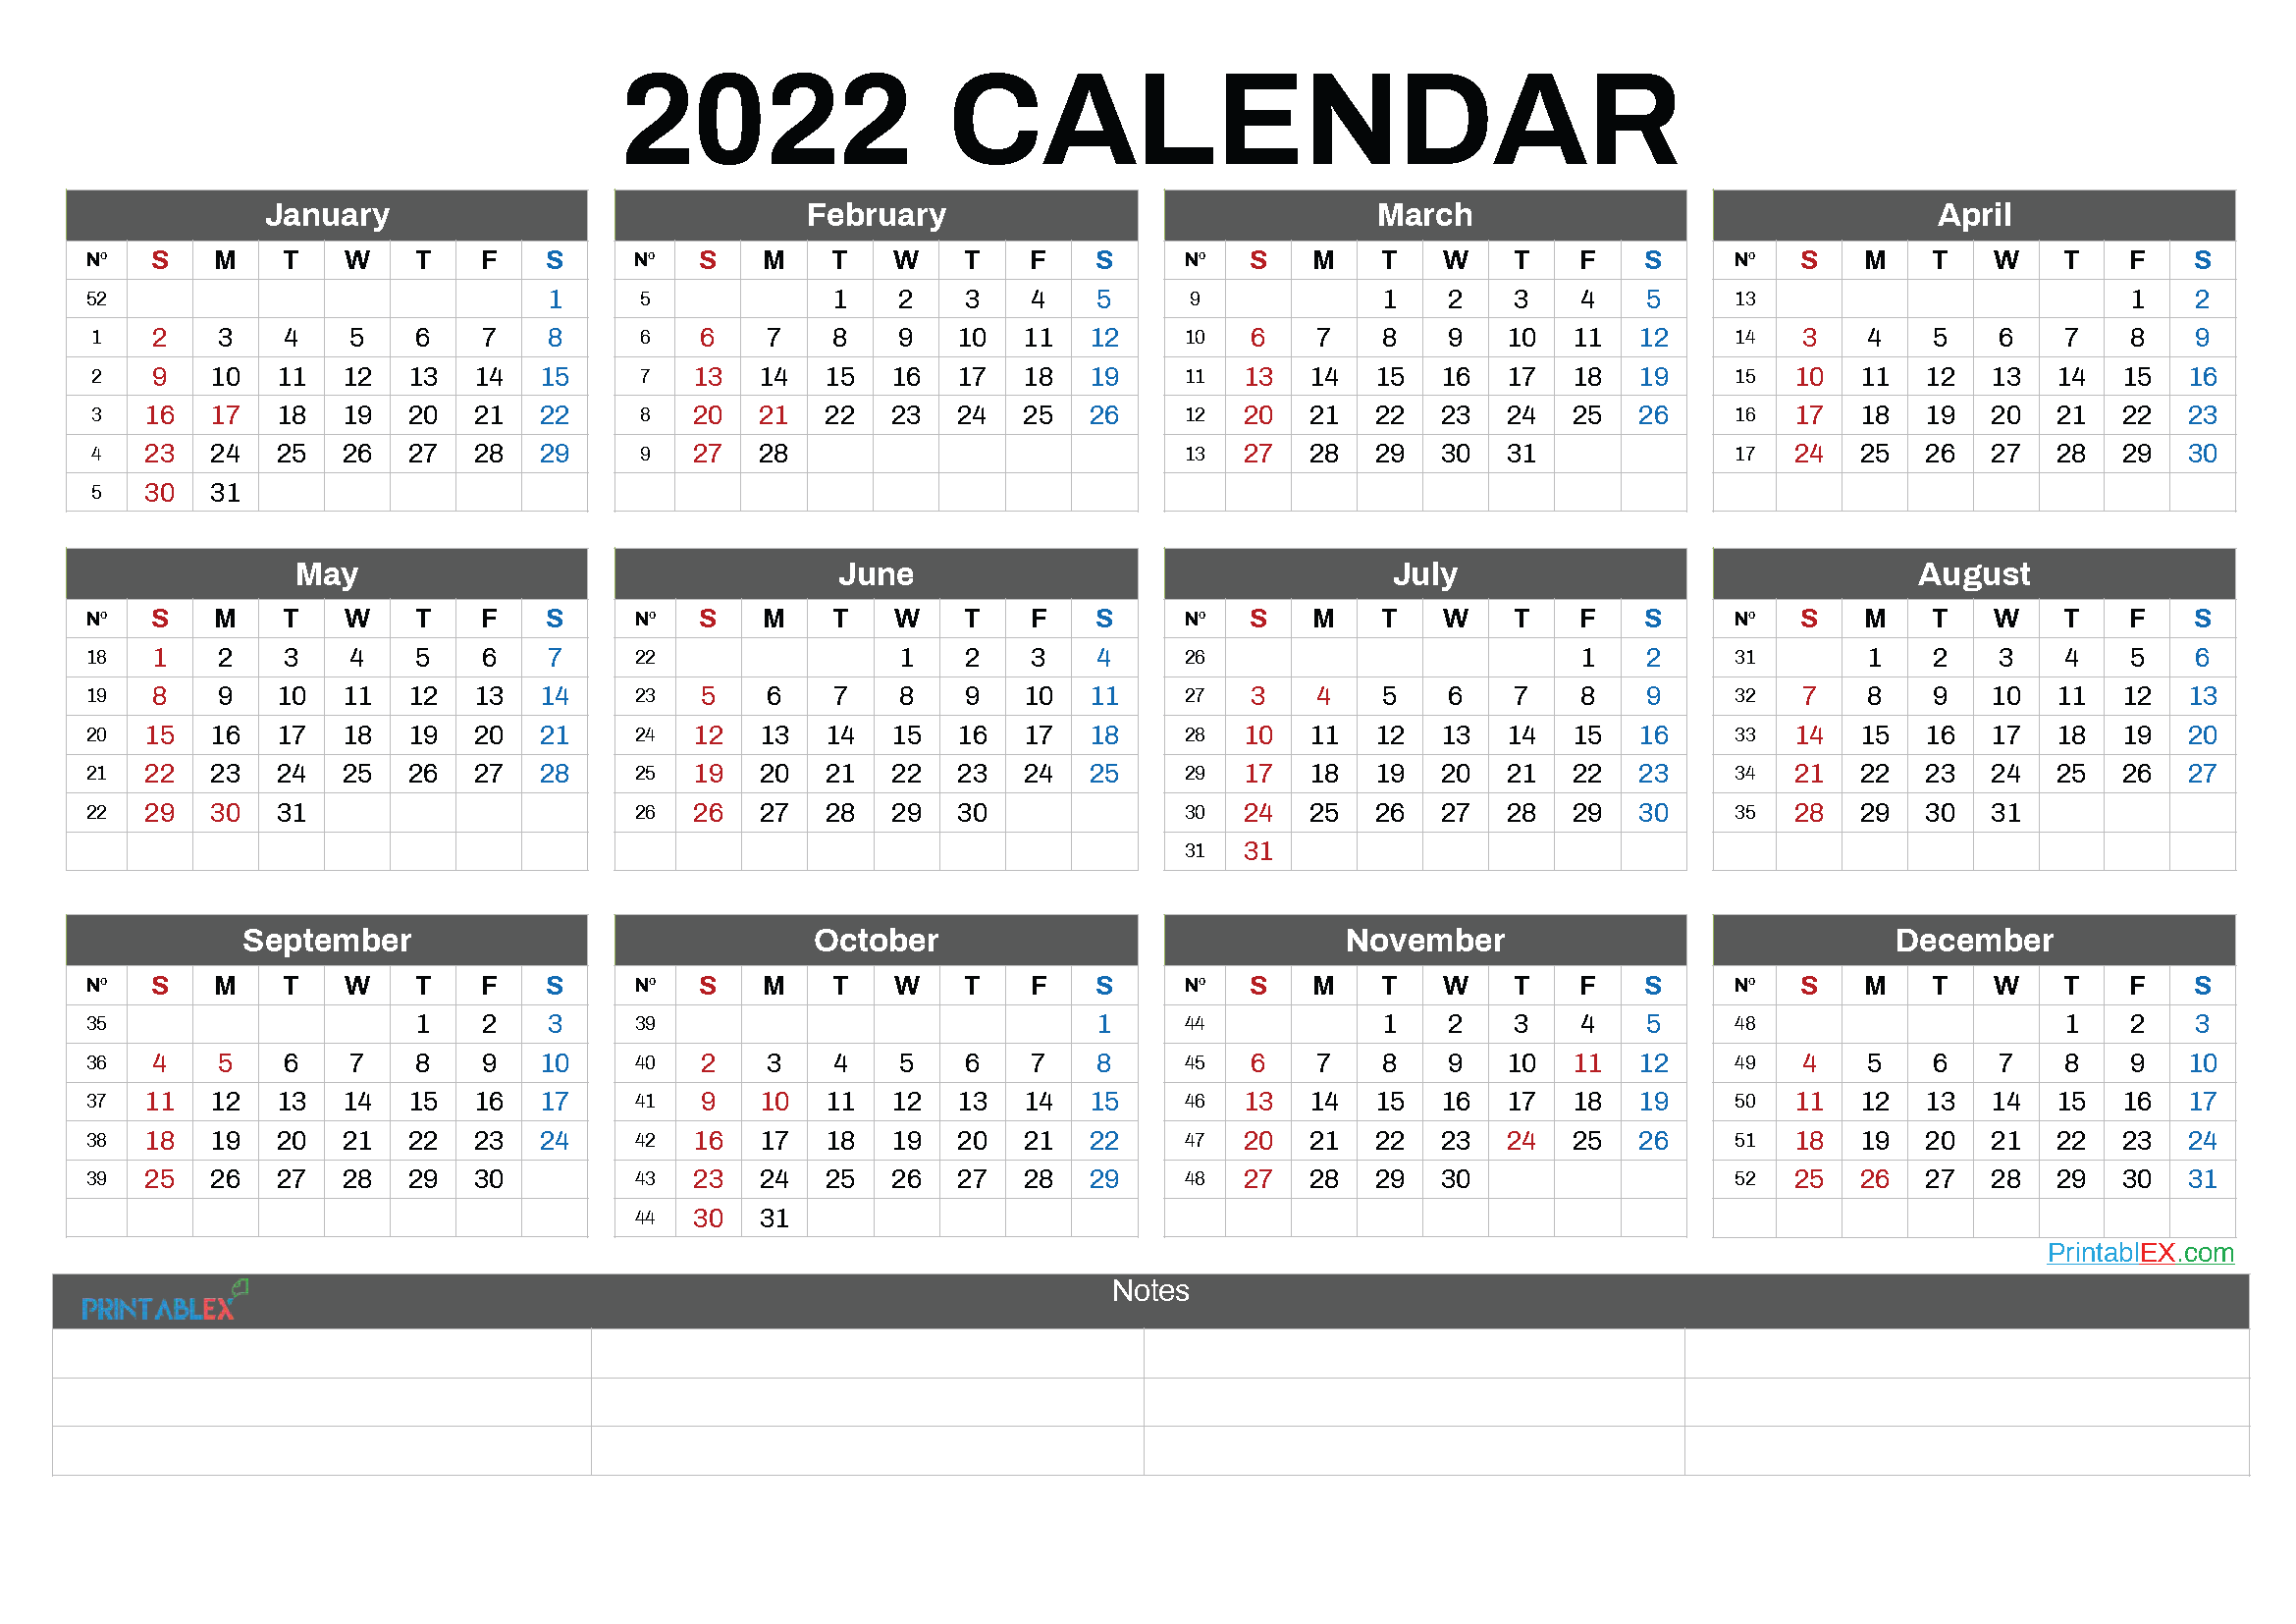 Free Printable 2022 Calendar by Month (Font: droid)